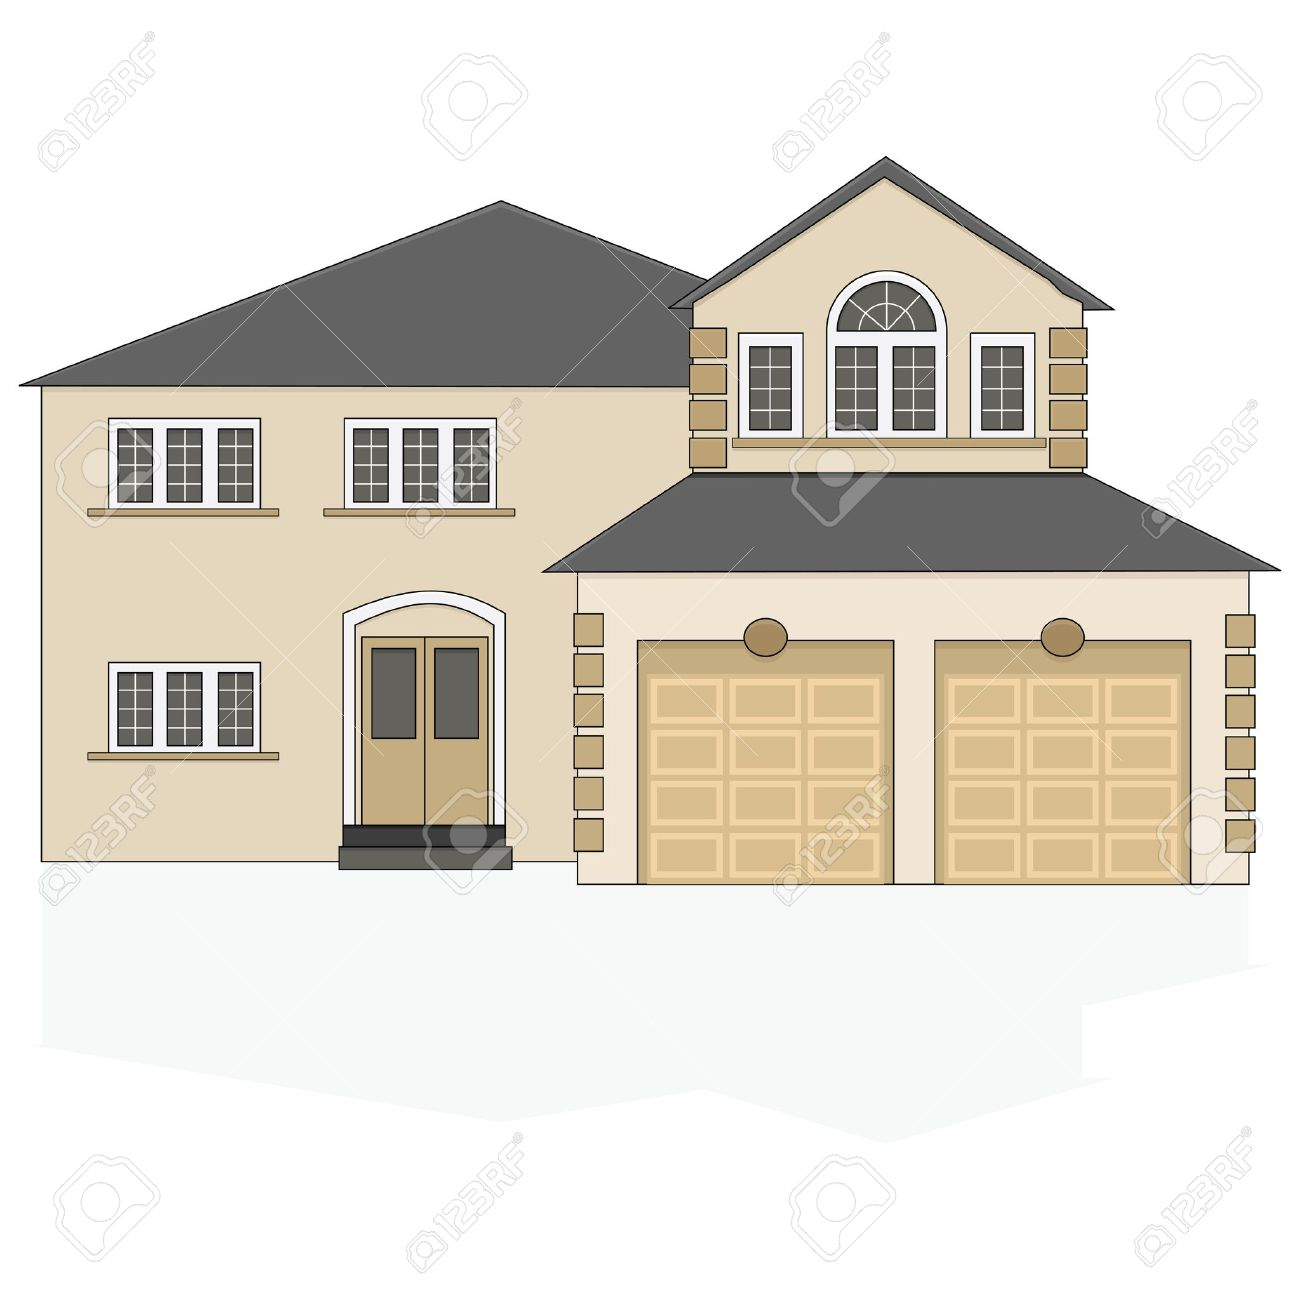 Hosue clipart big house North Fancy clipart Illustration Of